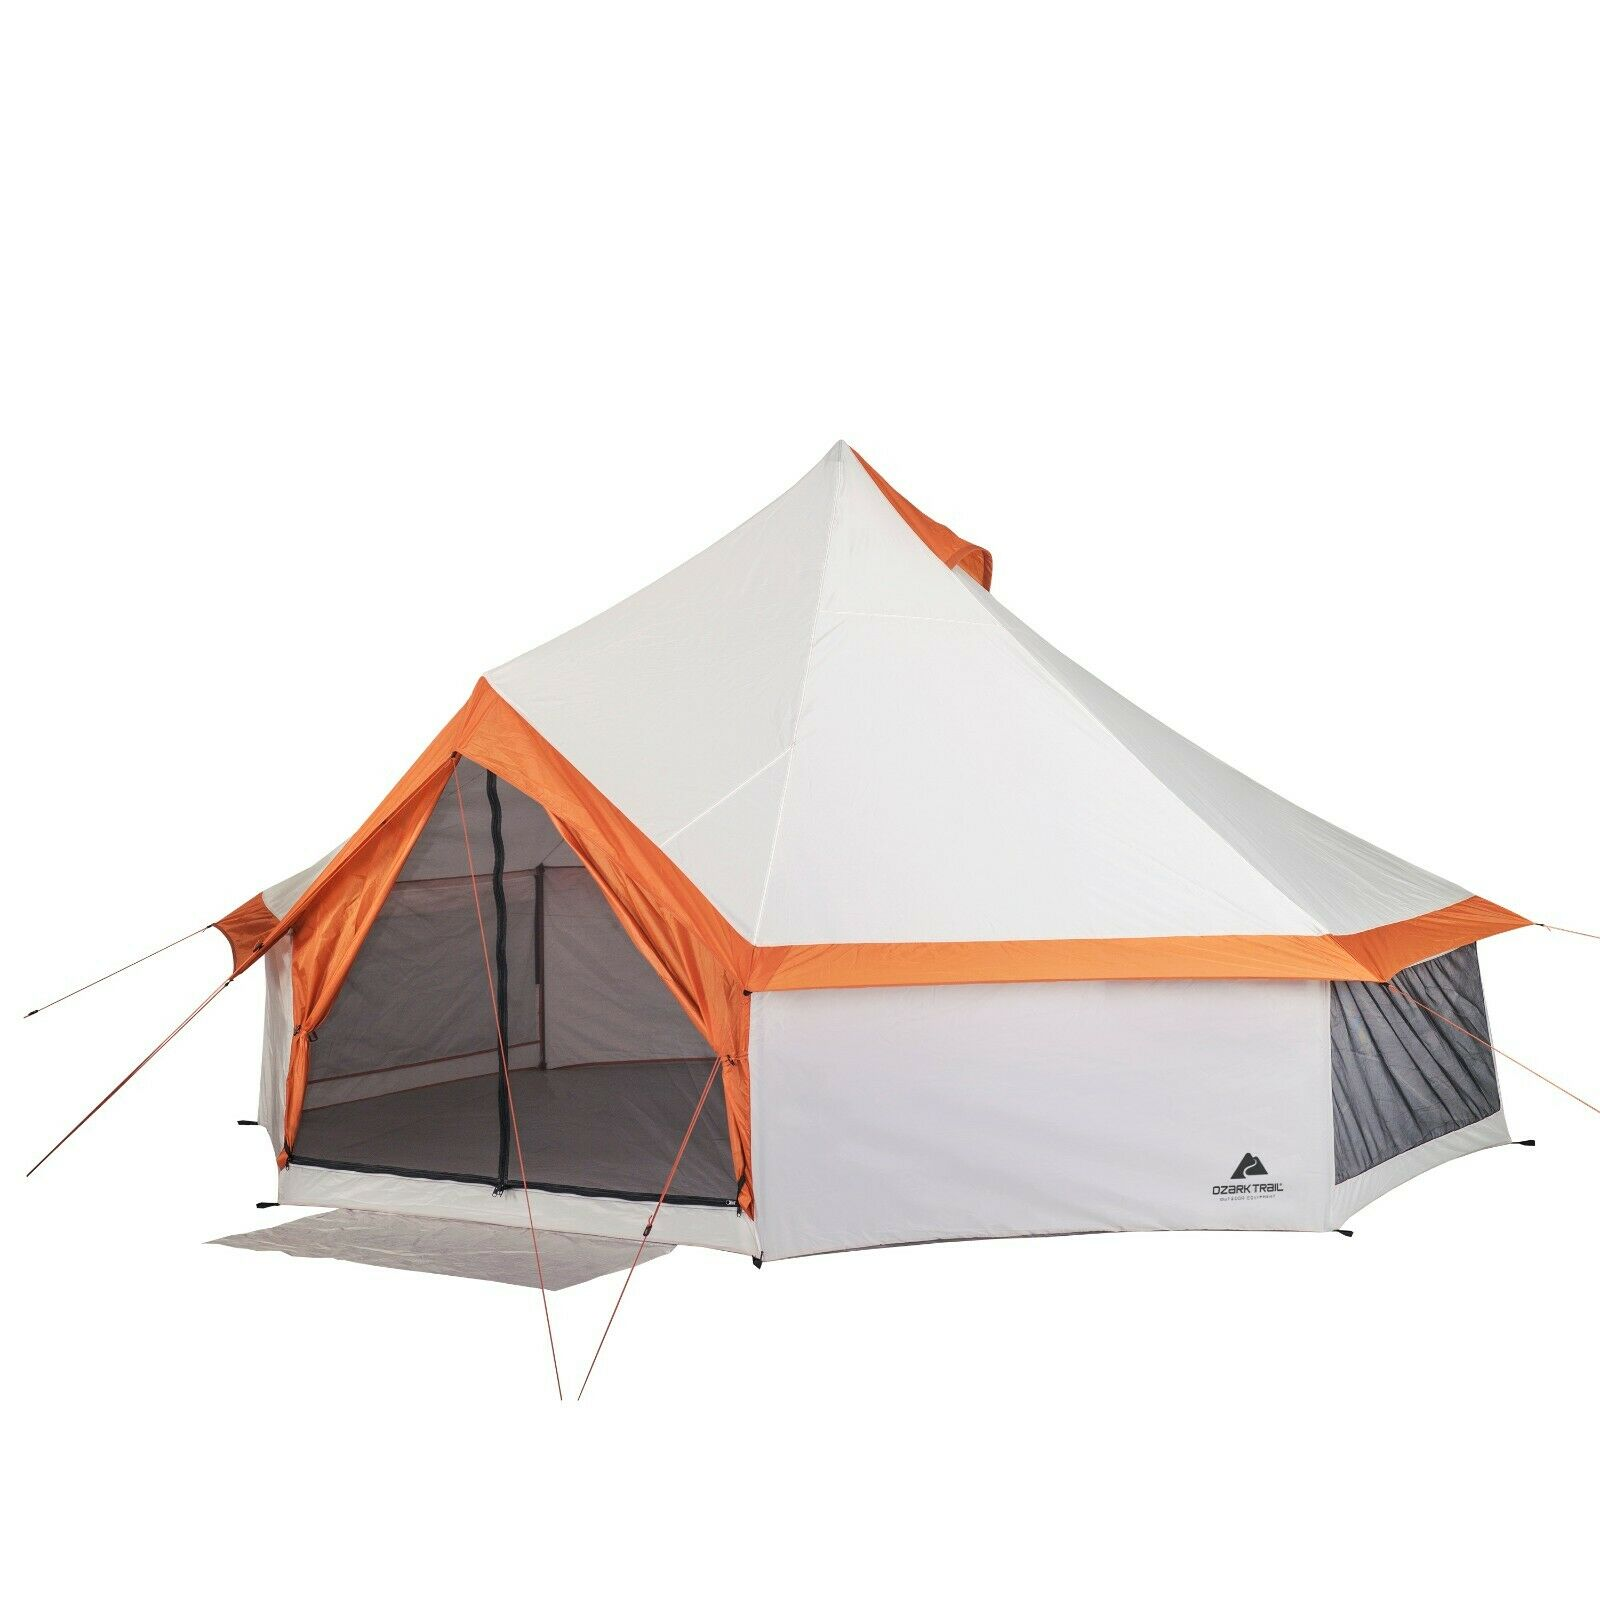 Large Camping Tent Yurt Style 8 Person Hiking Outdoor Family